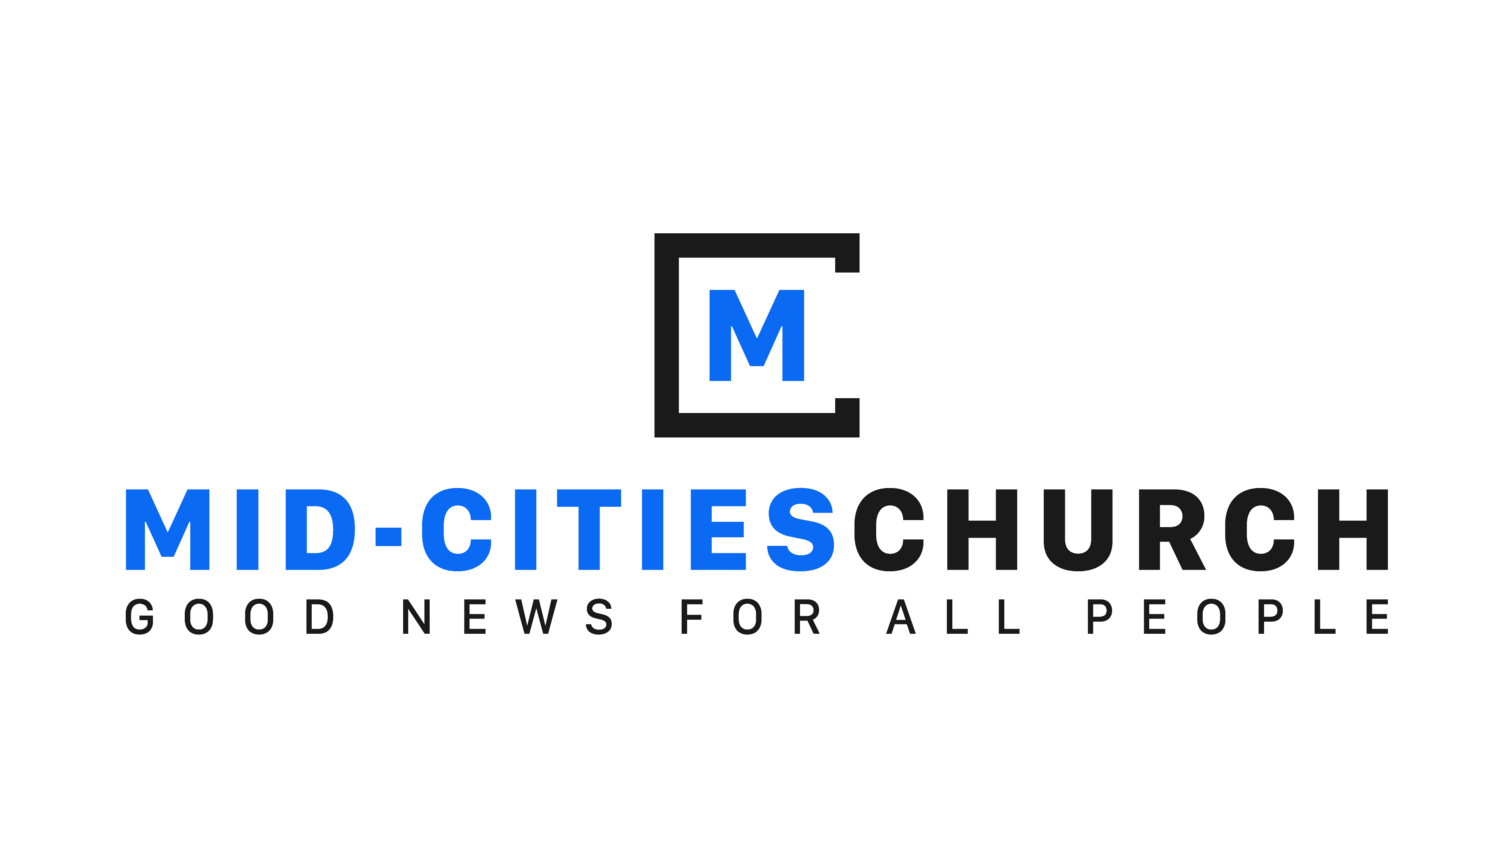 Mid-Cities Church